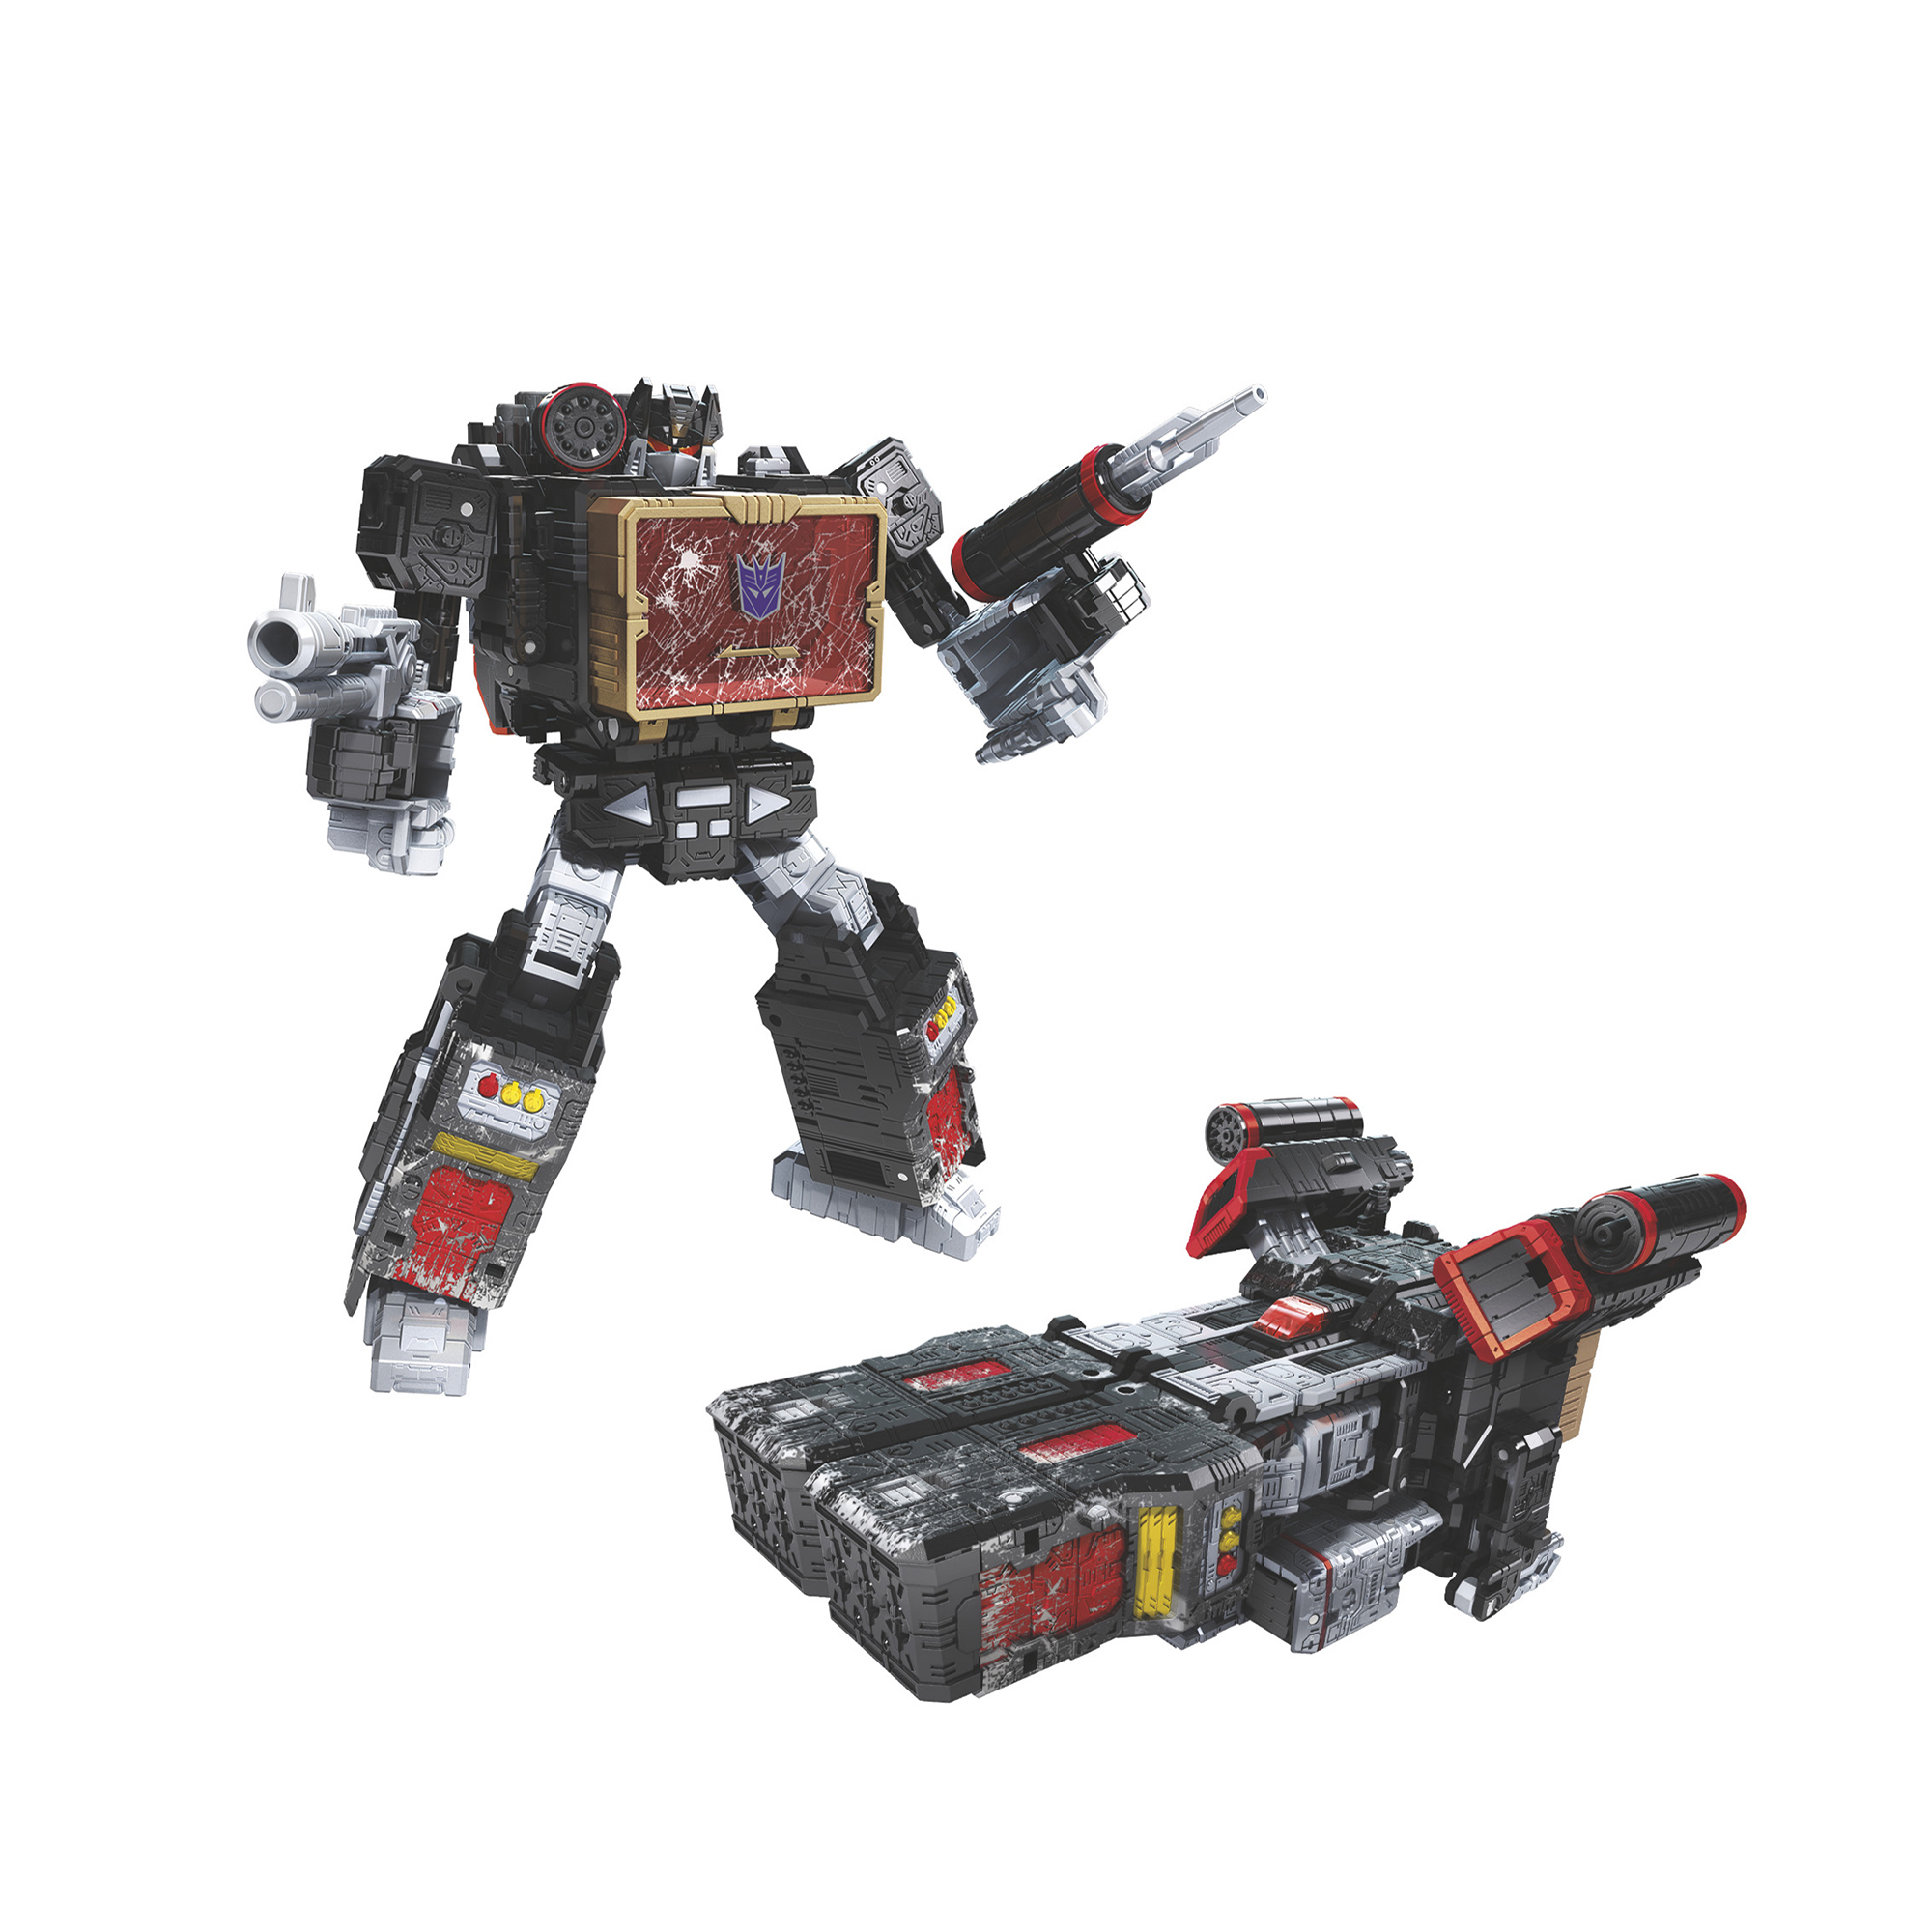 Transformers War for Cybertron Voyager 35th Anniversary WFC-S55 Soundblaster